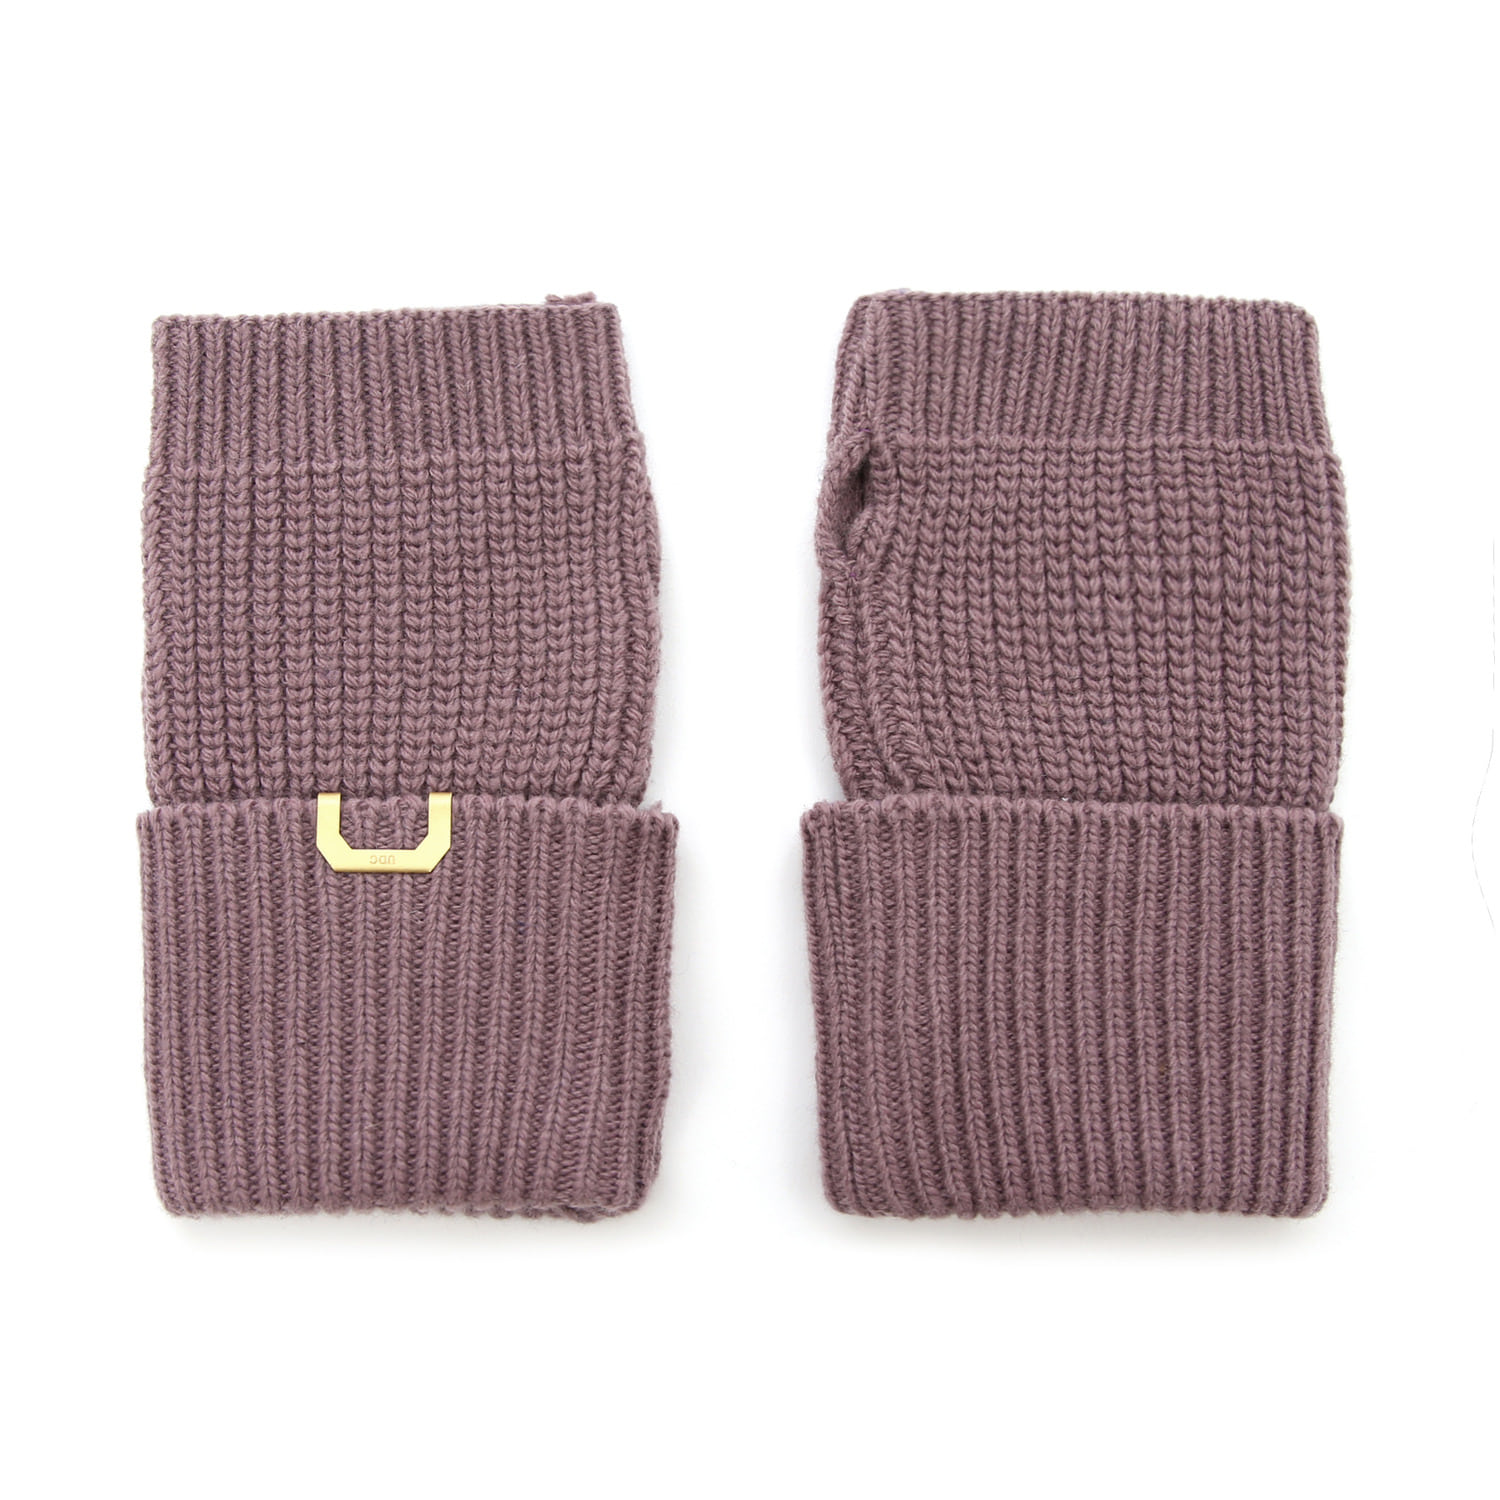 SLEEVE WARMER / LAMBS WOOL / SMOKE PURPLE